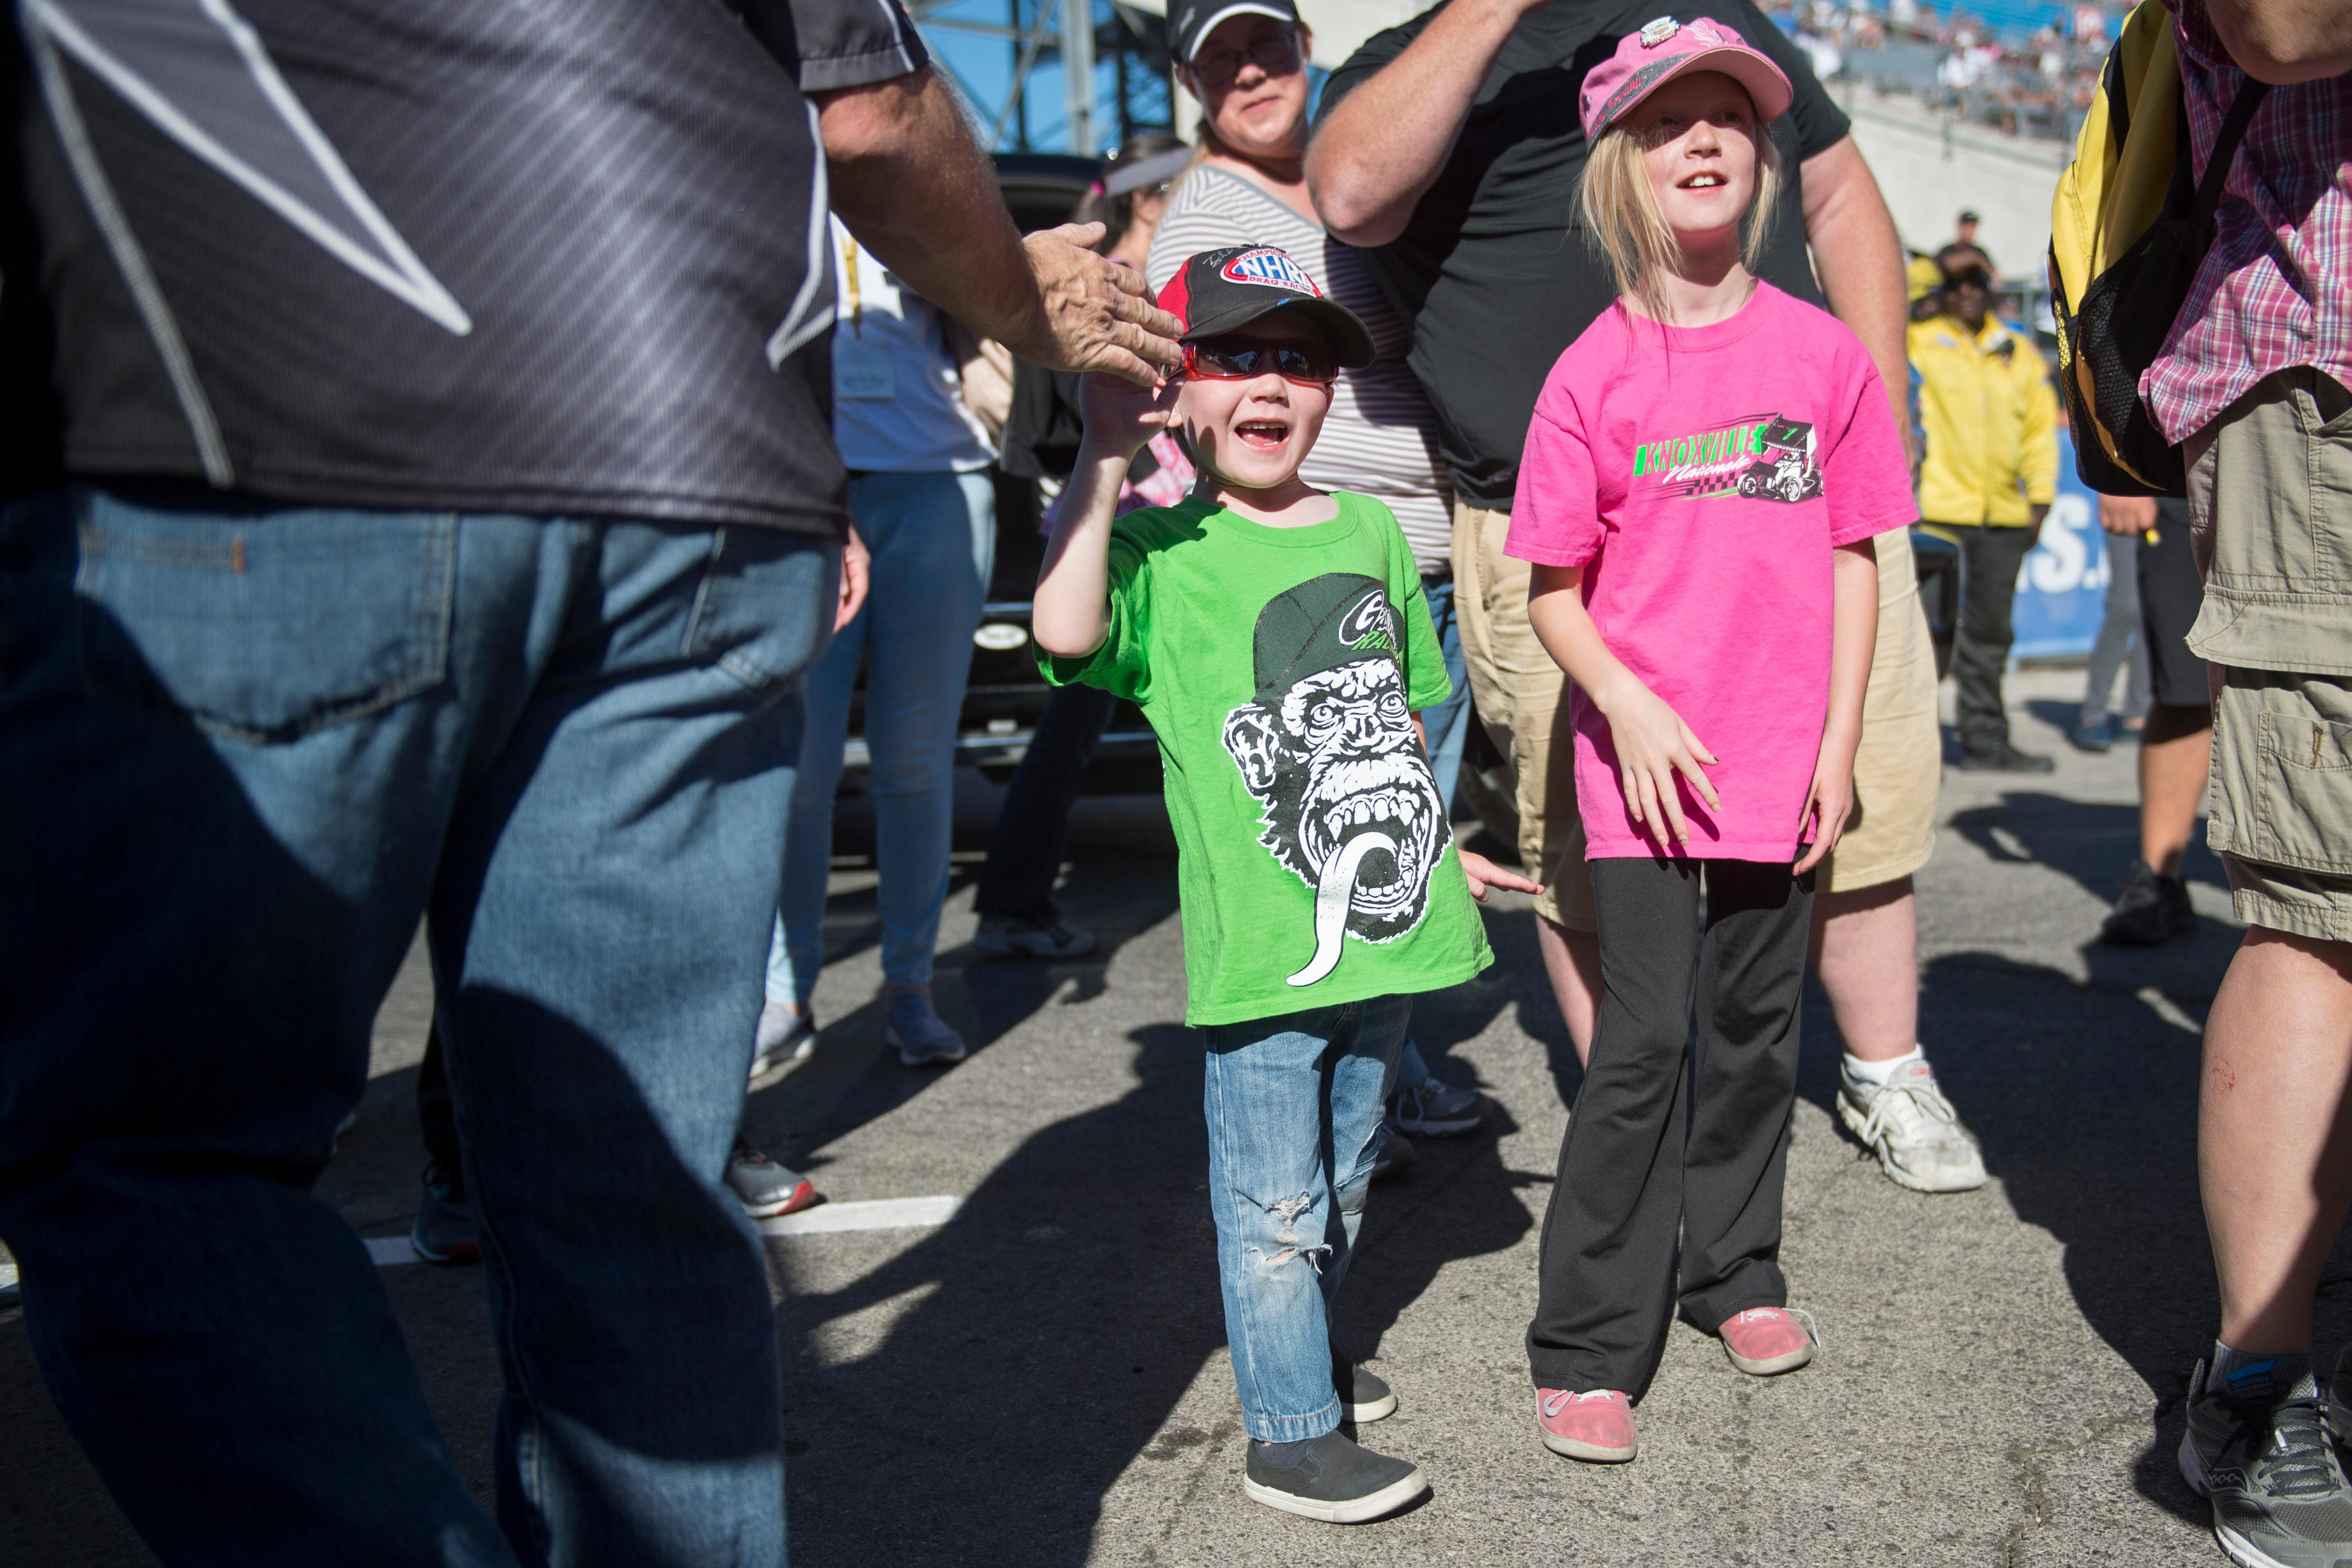 Siblings Tyler, left, and Danielle Seaman from Salt Lake City get high-fives from drivers before the start of the NHRA Toyota Nationals Sunday, October 29, 2017, at The Strip at the Las Vegas Motor Speedway. CREDIT: Sam Morris/Las Vegas News Bureau